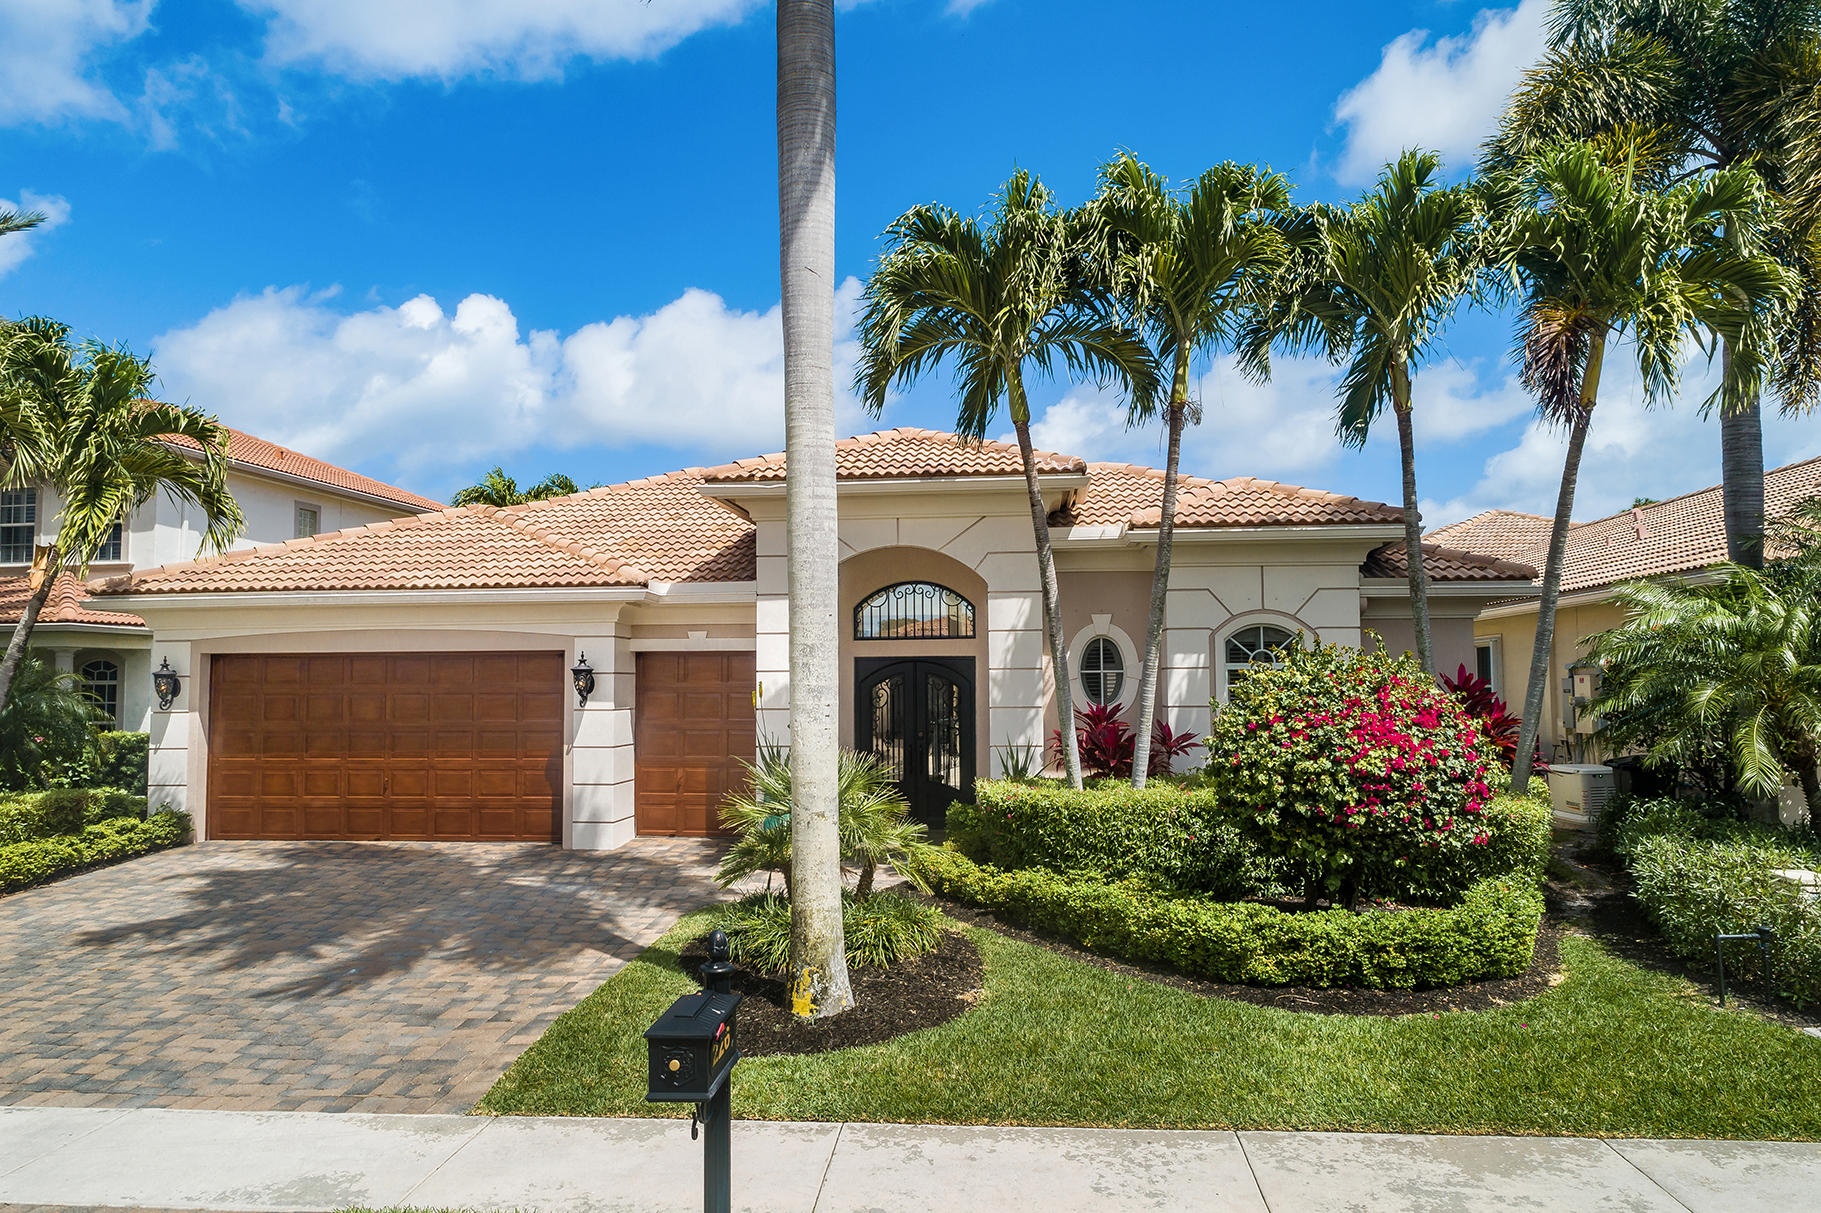 226 Montant Drive, Palm Beach Gardens, Florida 33410, 4 Bedrooms Bedrooms, ,3.1 BathroomsBathrooms,A,Single family,Montant,RX-10611385